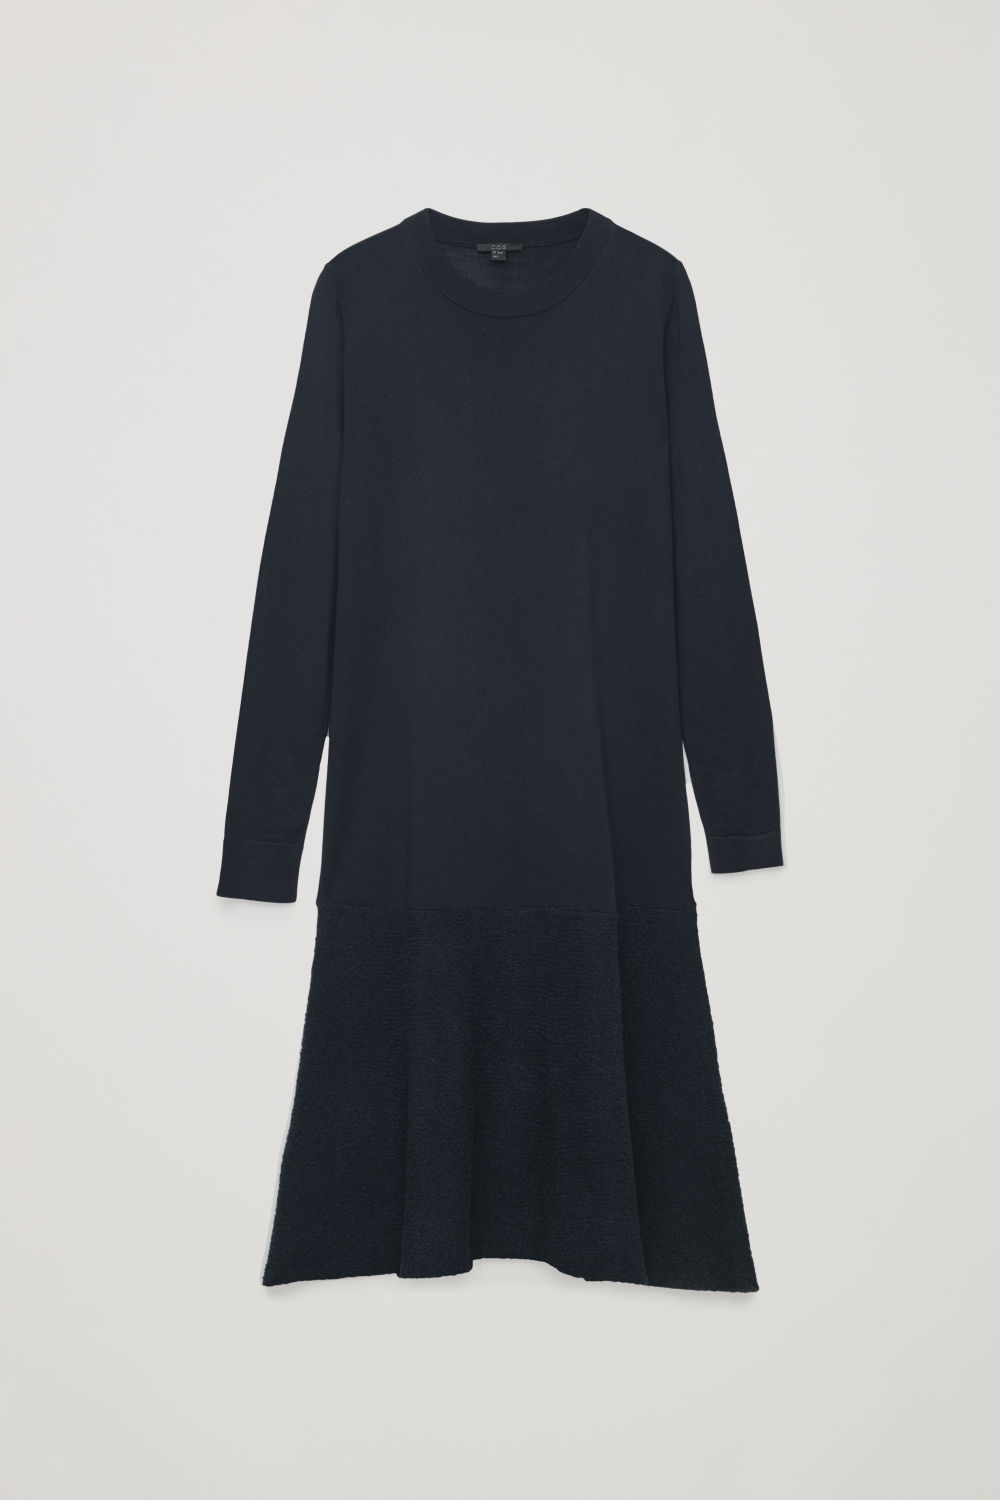 BOUCLE-PANELLED MERINO DRESS